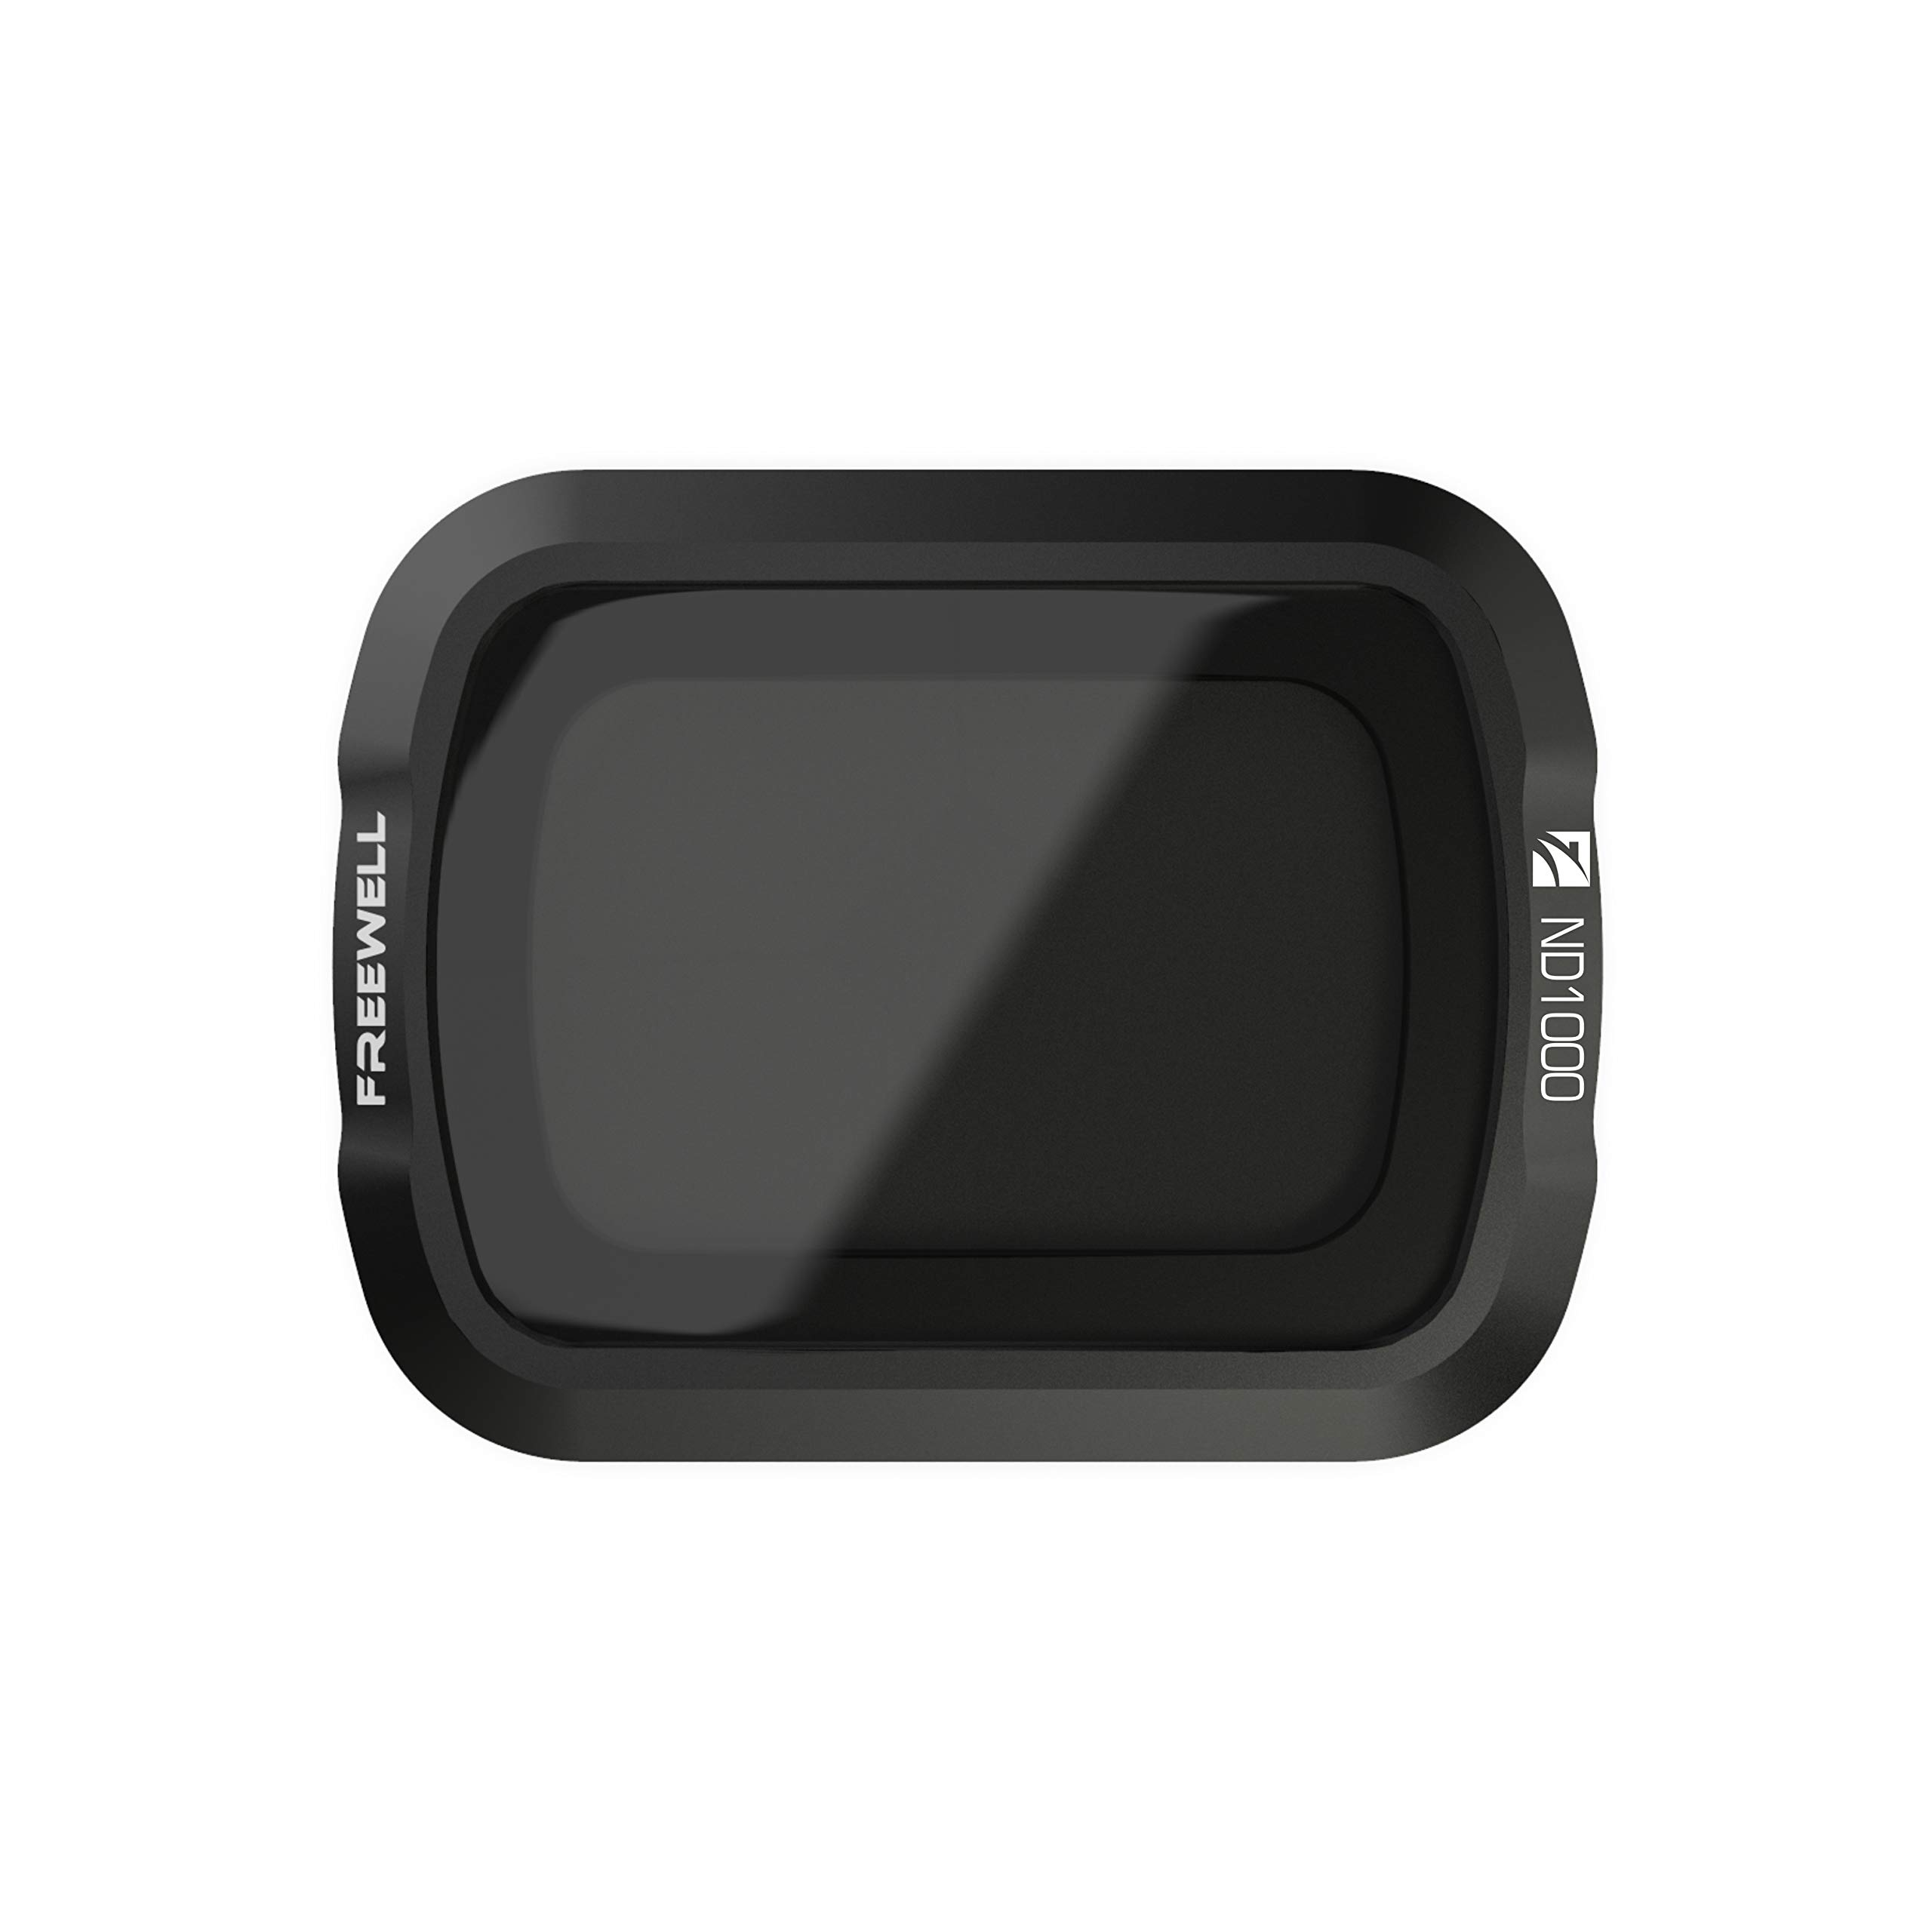 Freewell ND1000 Long Exposure Photography Netural Density Camera Lens Filters Compatible with DJI Osmo Pocket by Freewell